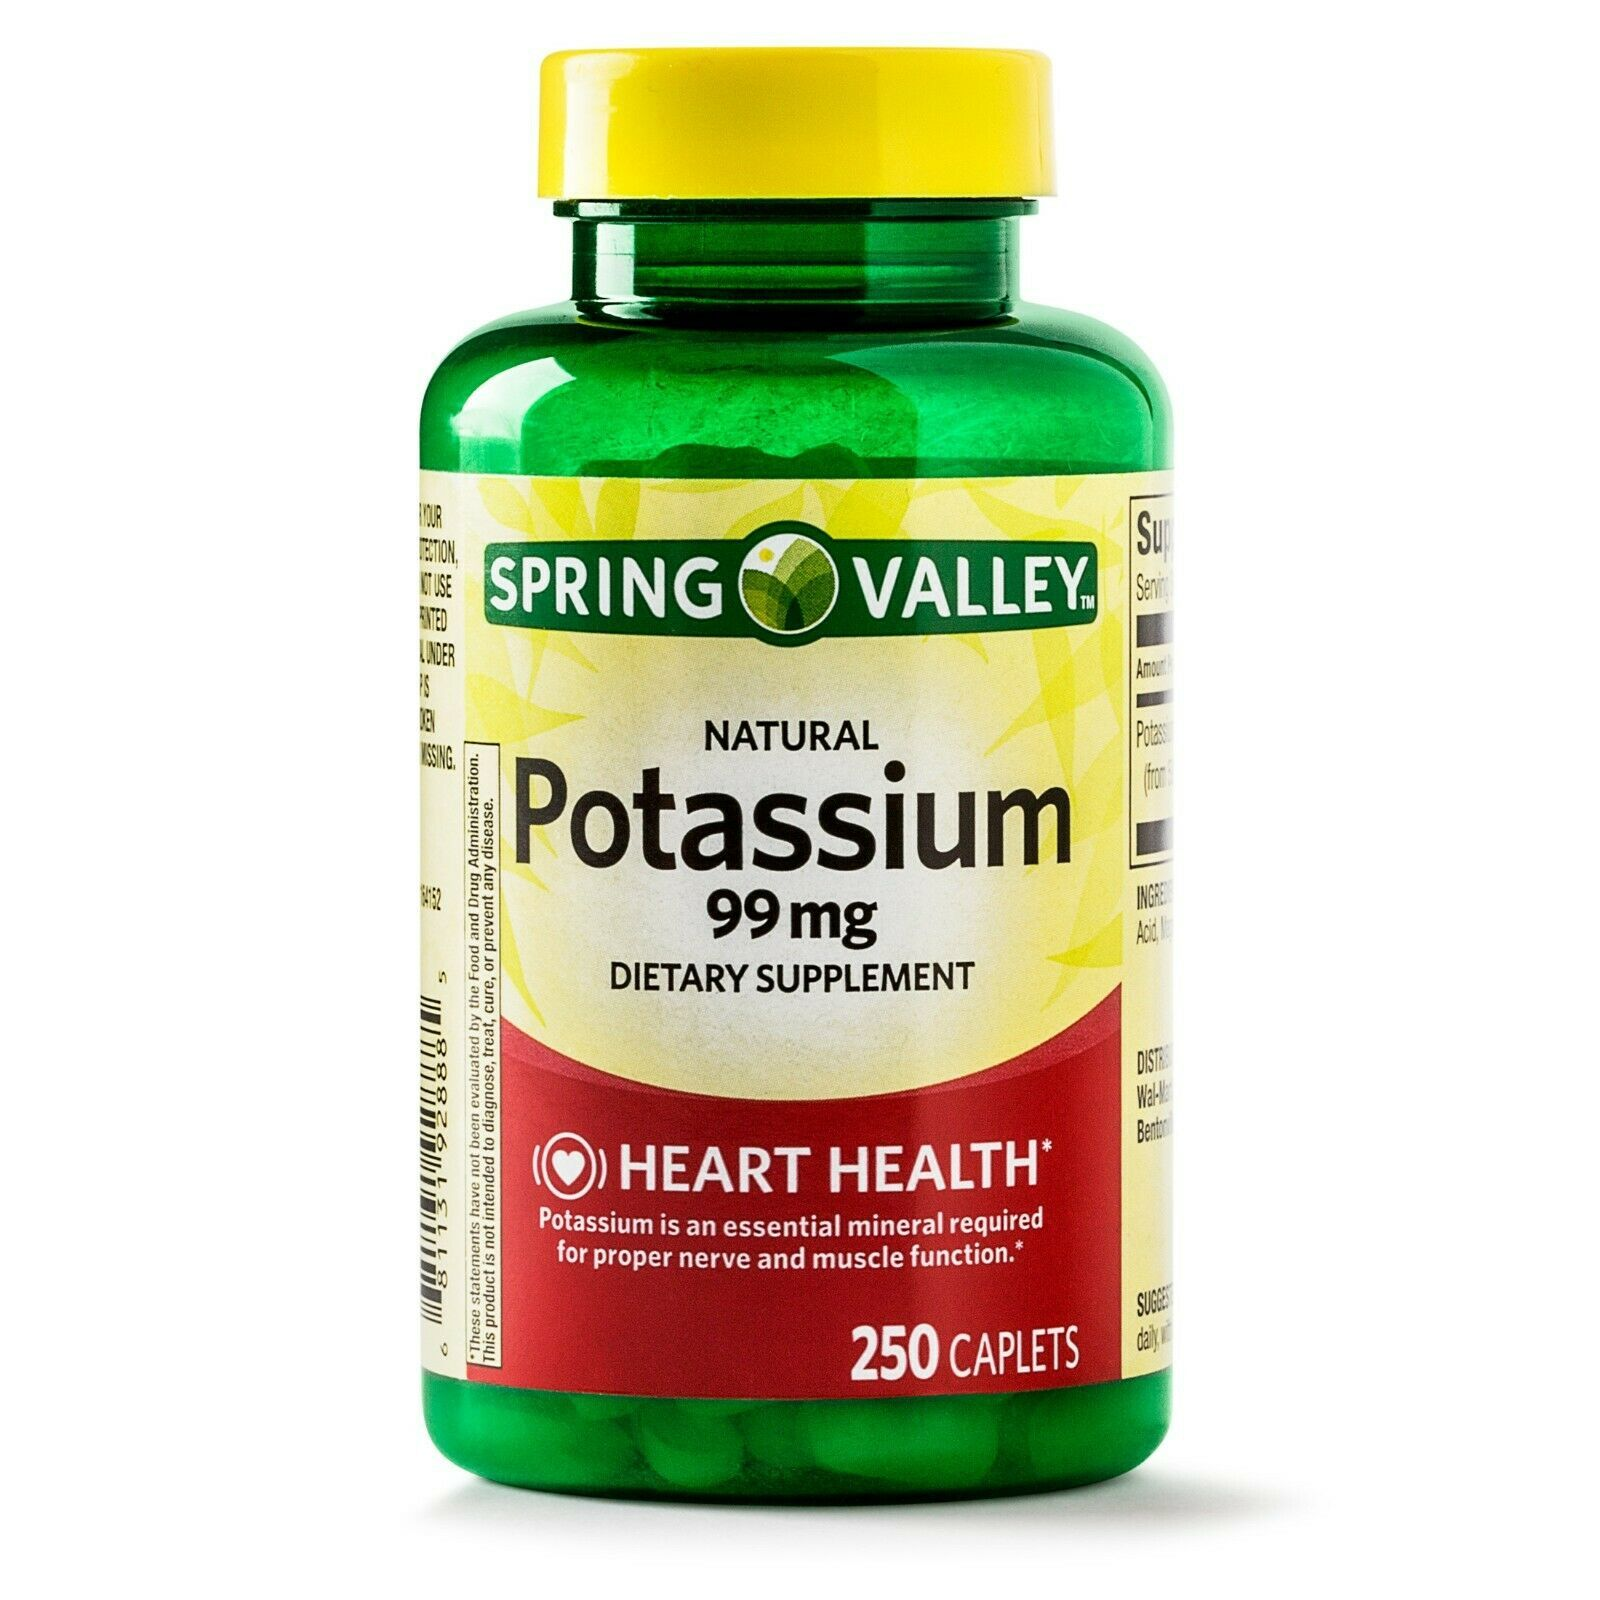 Spring Valley Potassium Dietary Supplement Caplets, 99mg, 250-Count. - $11.87